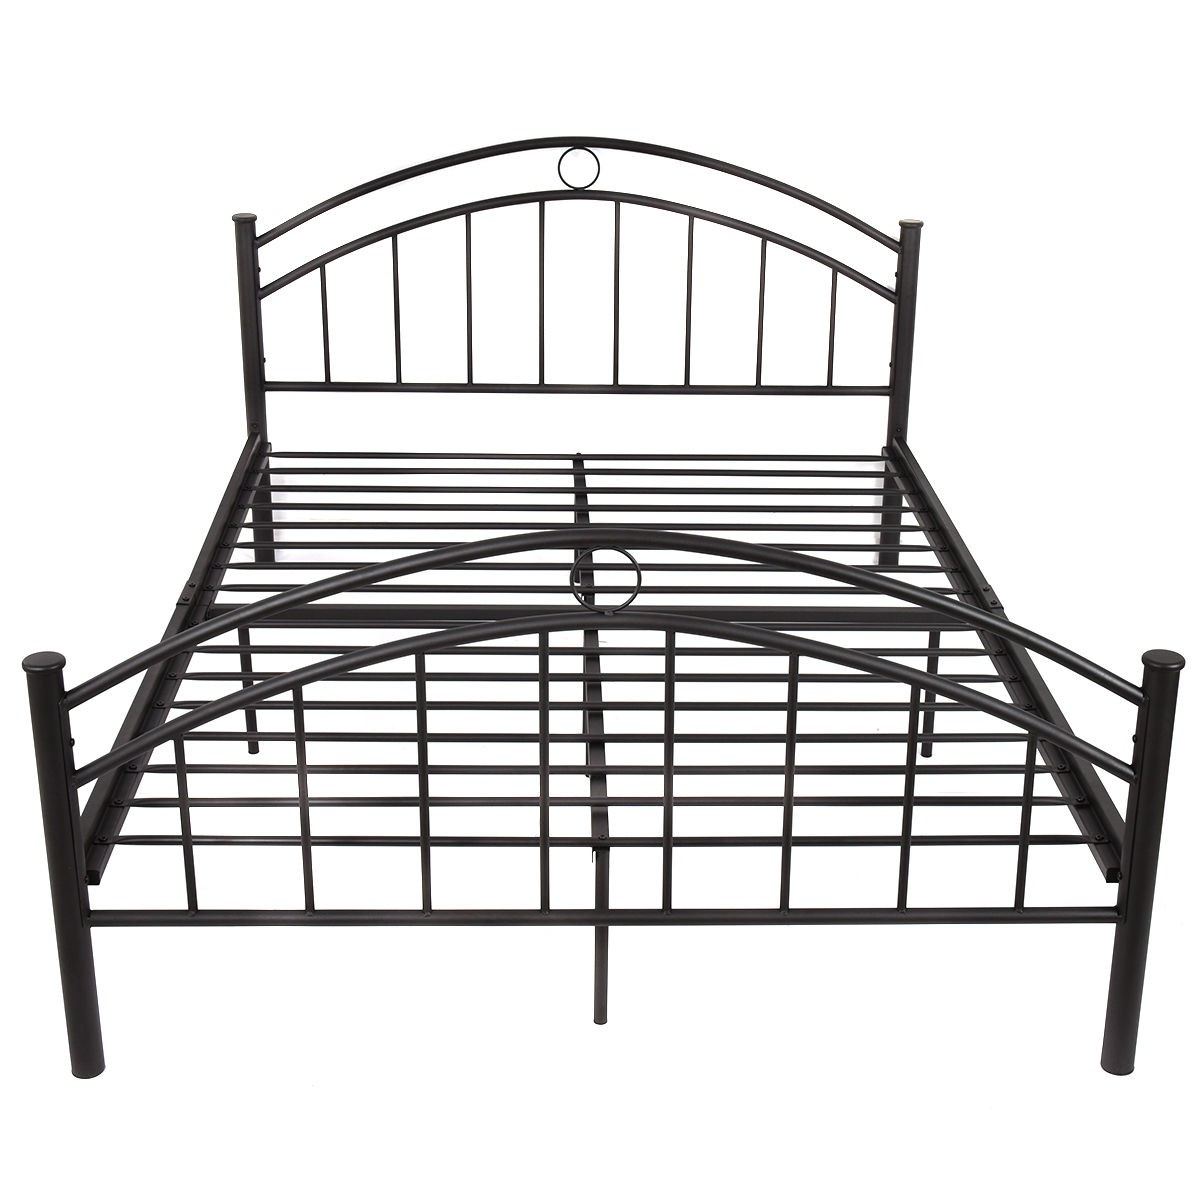 Us queen size metal bed frame mattress platform headboard for High bed frame queen